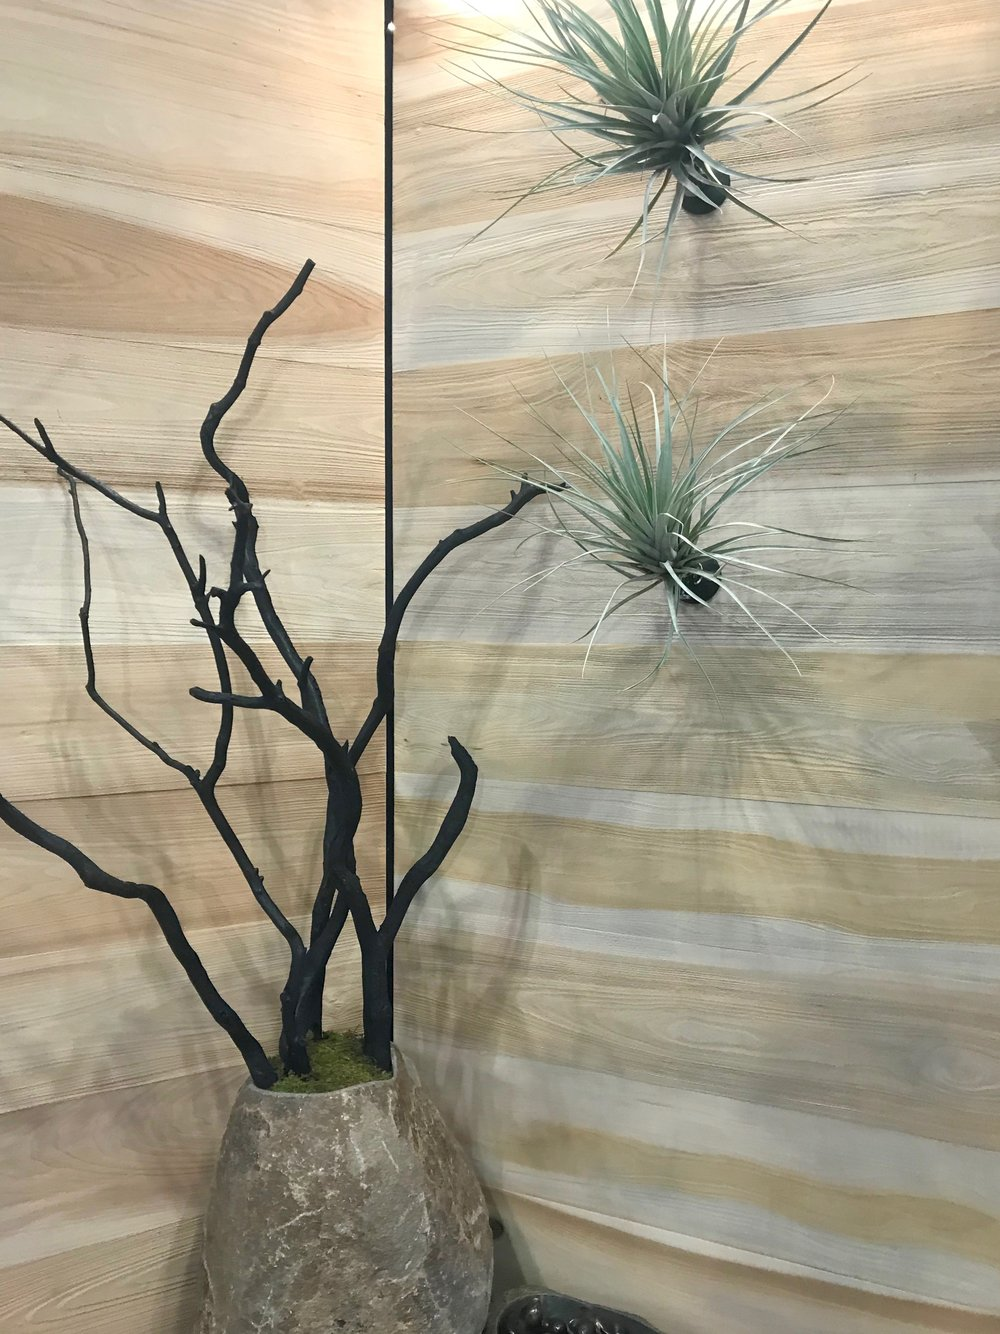 Wall mounted Tillandsia and blackened Manzanita